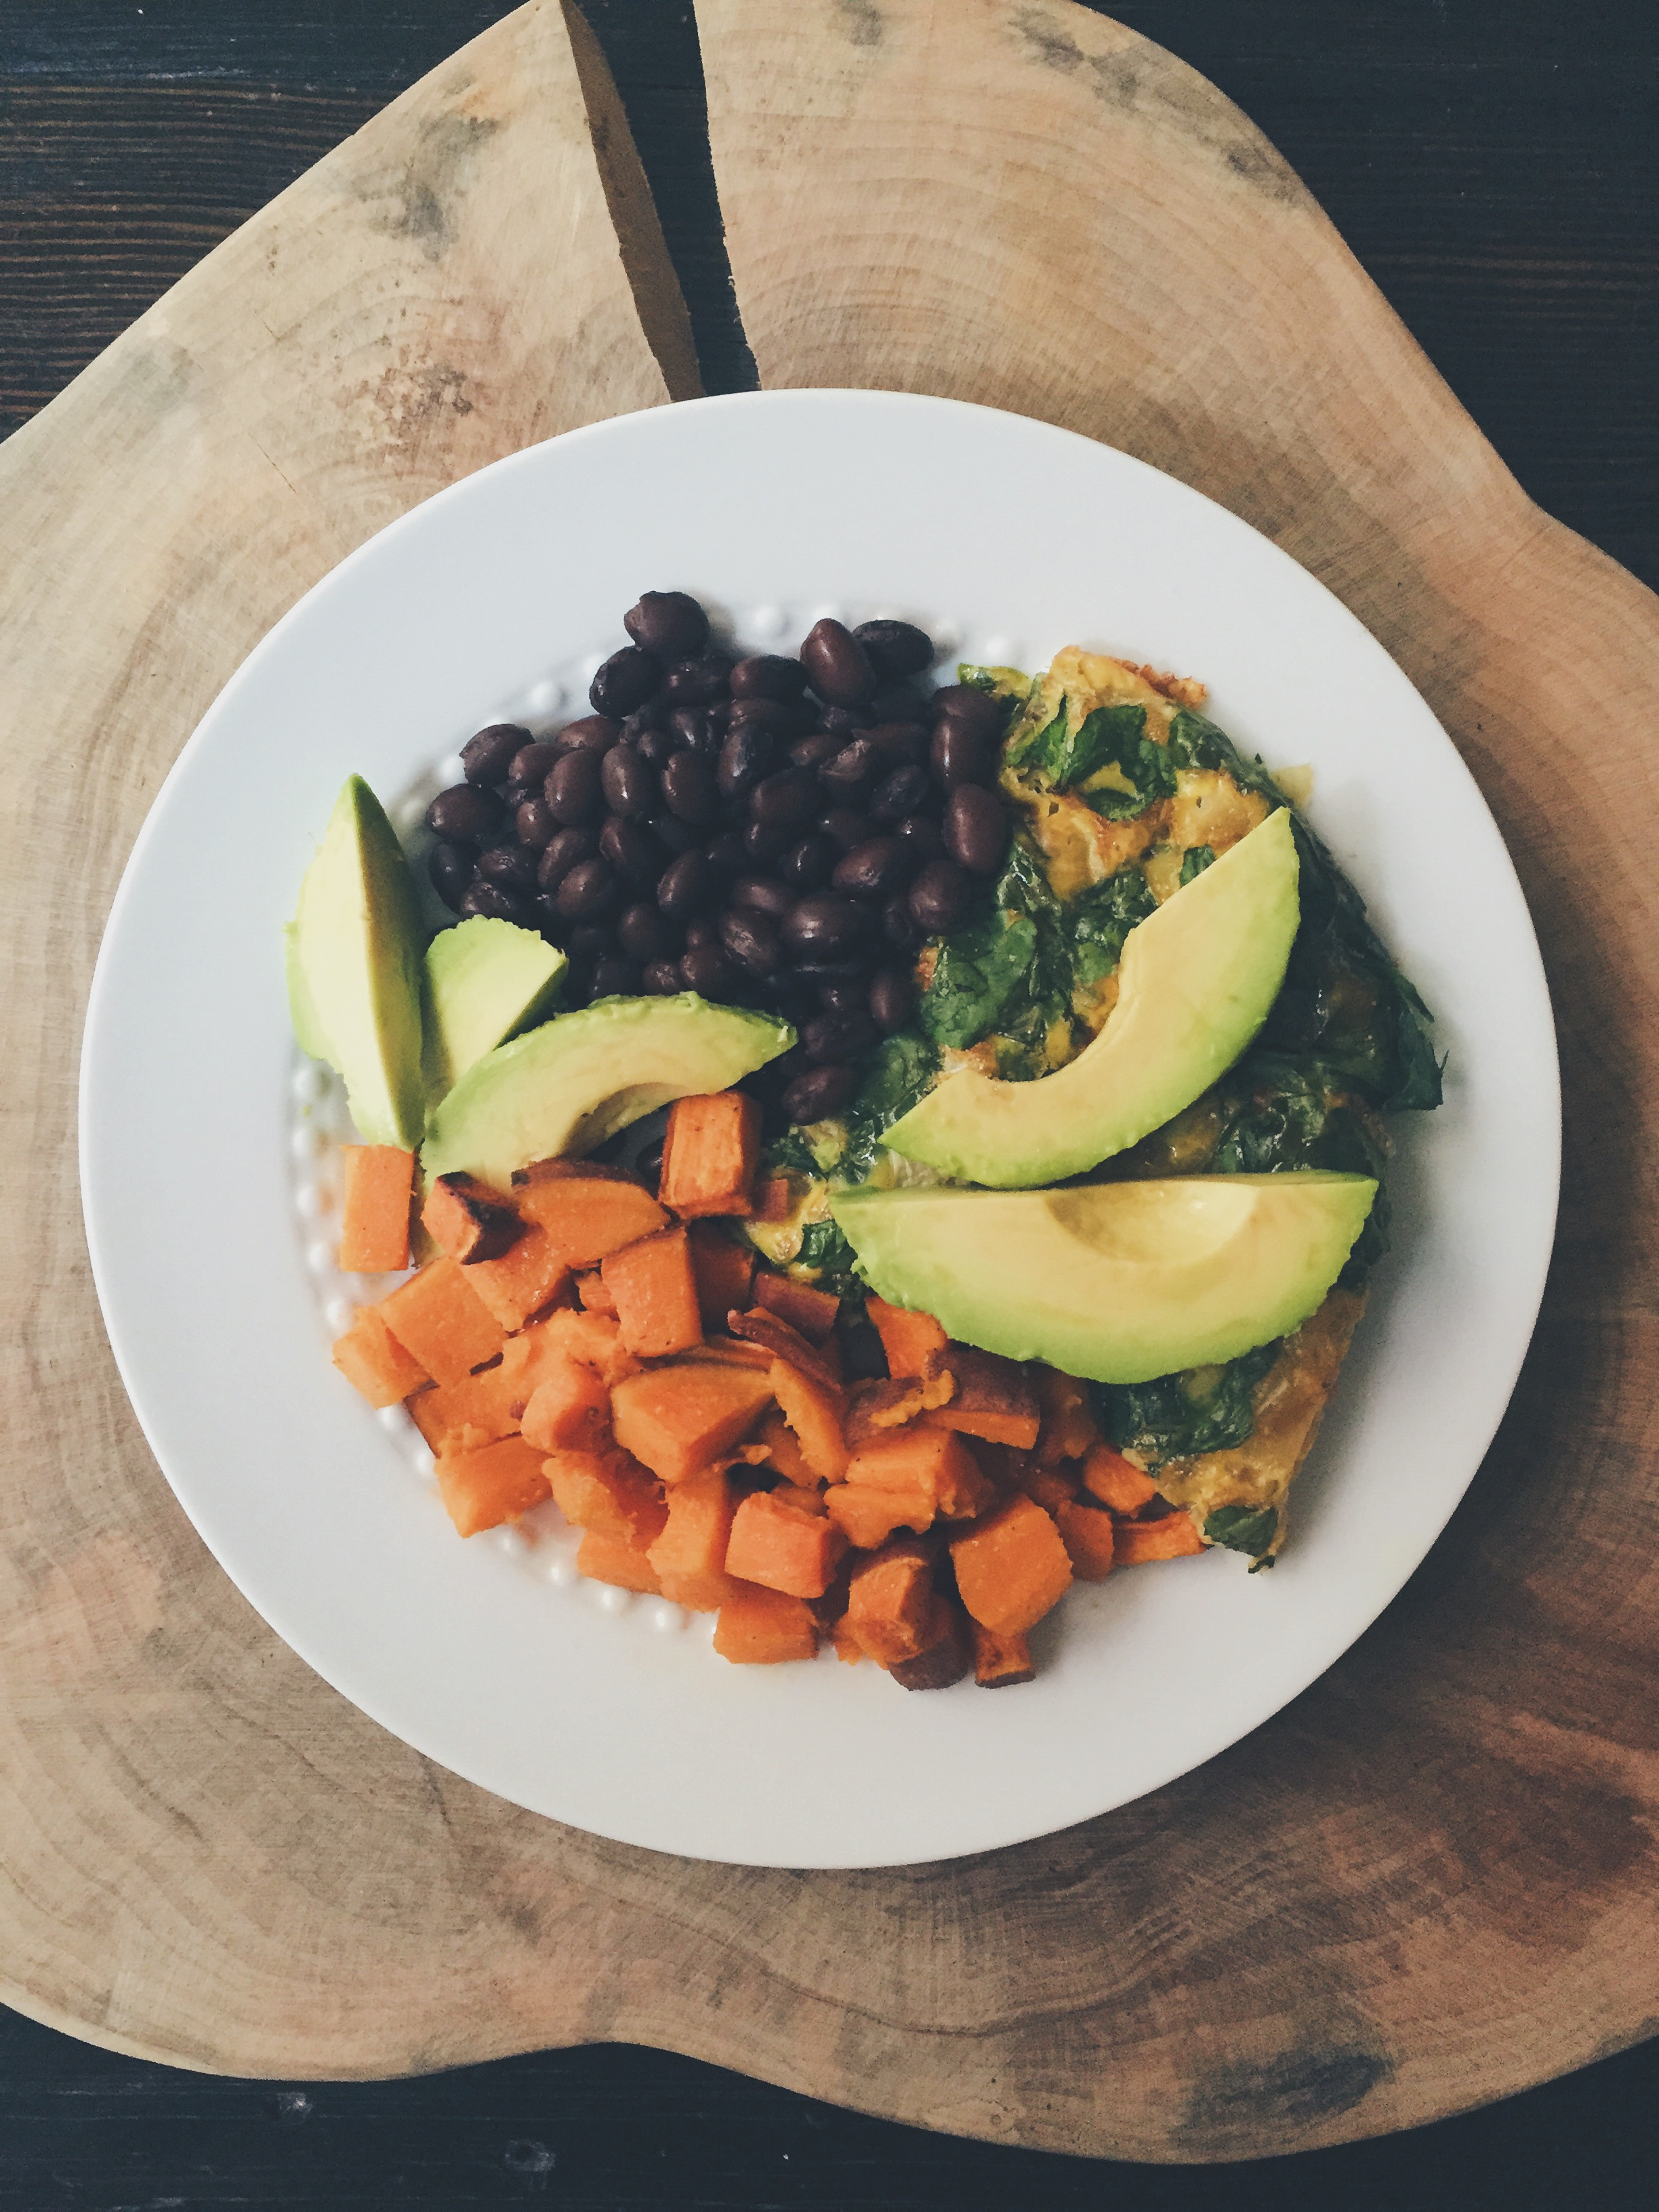 Broiled Vegetarian Frittata with a side of homemade sweet potatoes and black beans